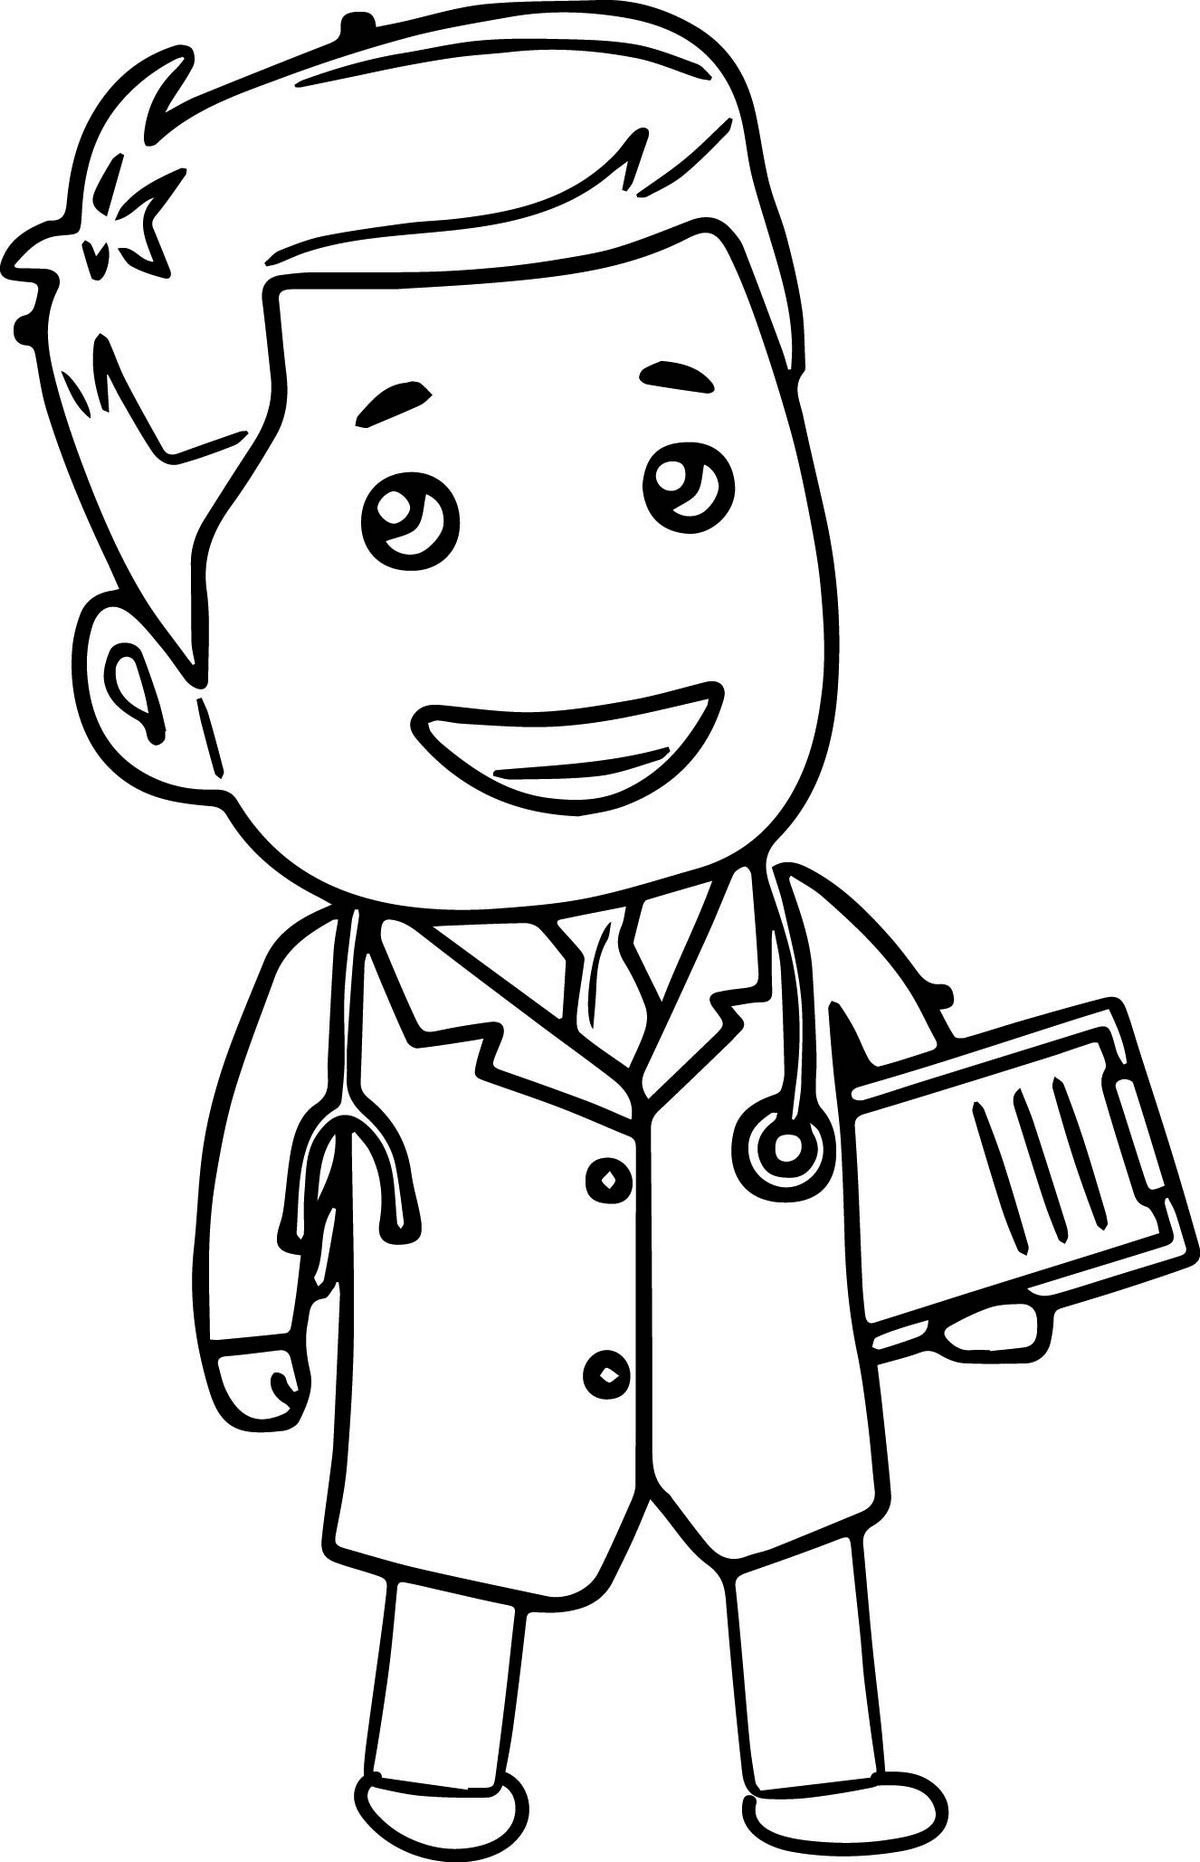 child-doctor-coloring-book